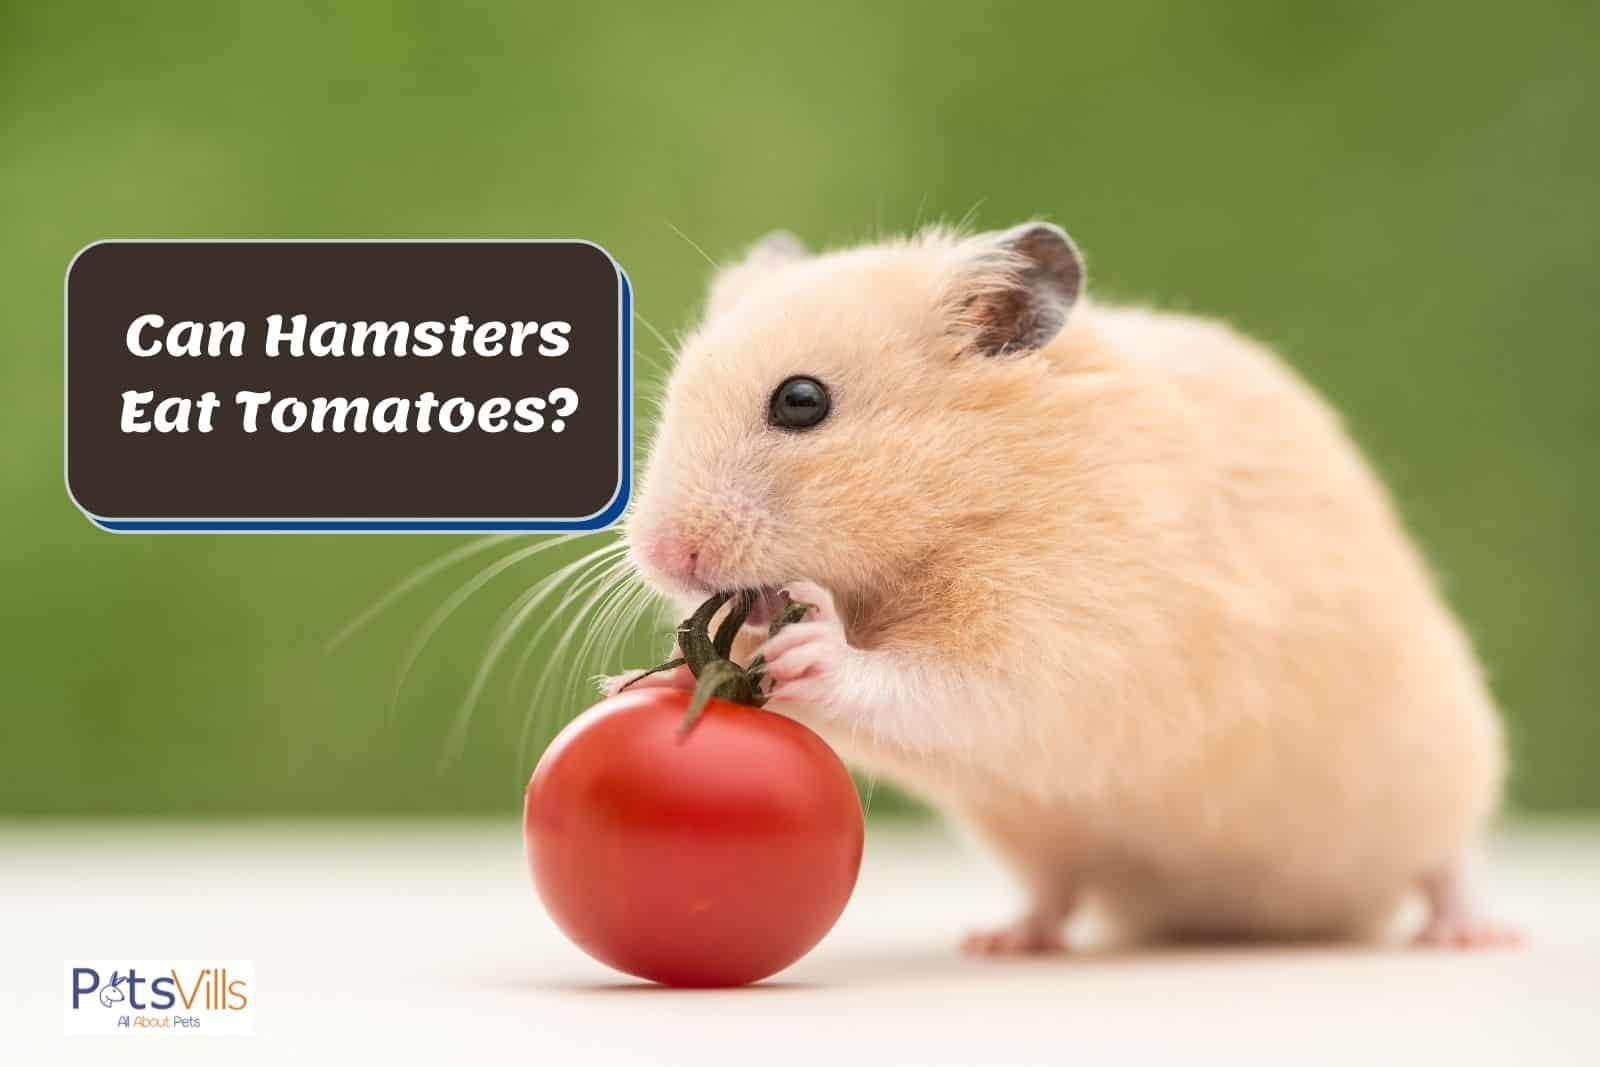 a hamster trying to eat tomato, can hamsters eat tomatoes